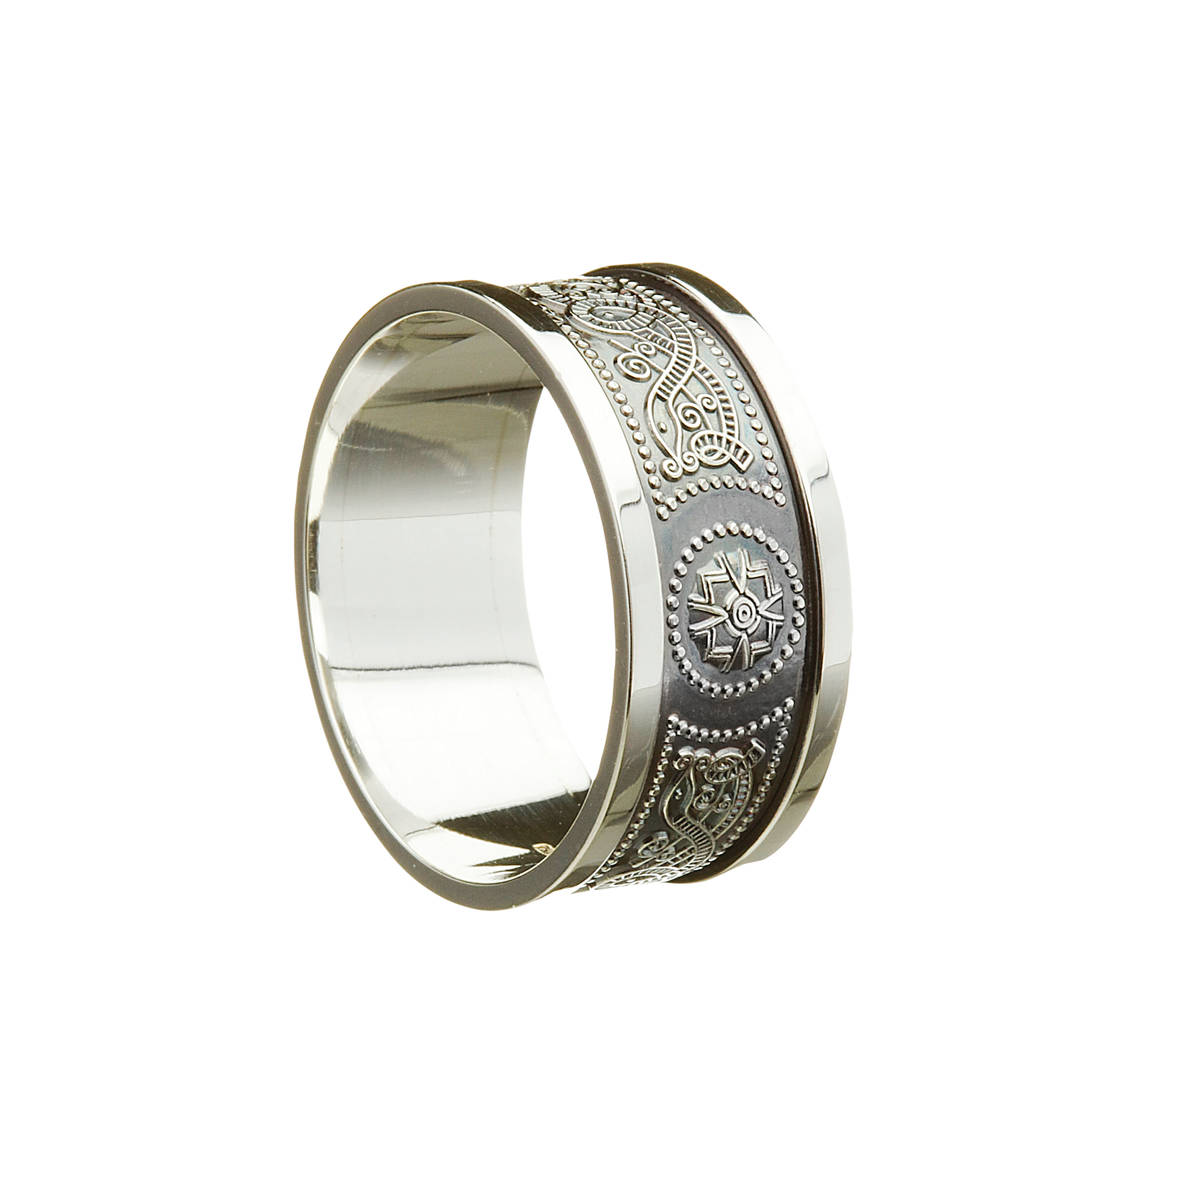 14 carat Gents 8 Mm Wide Light White Gold Arda Wedding Band With Heavy Flat White Gold Rims